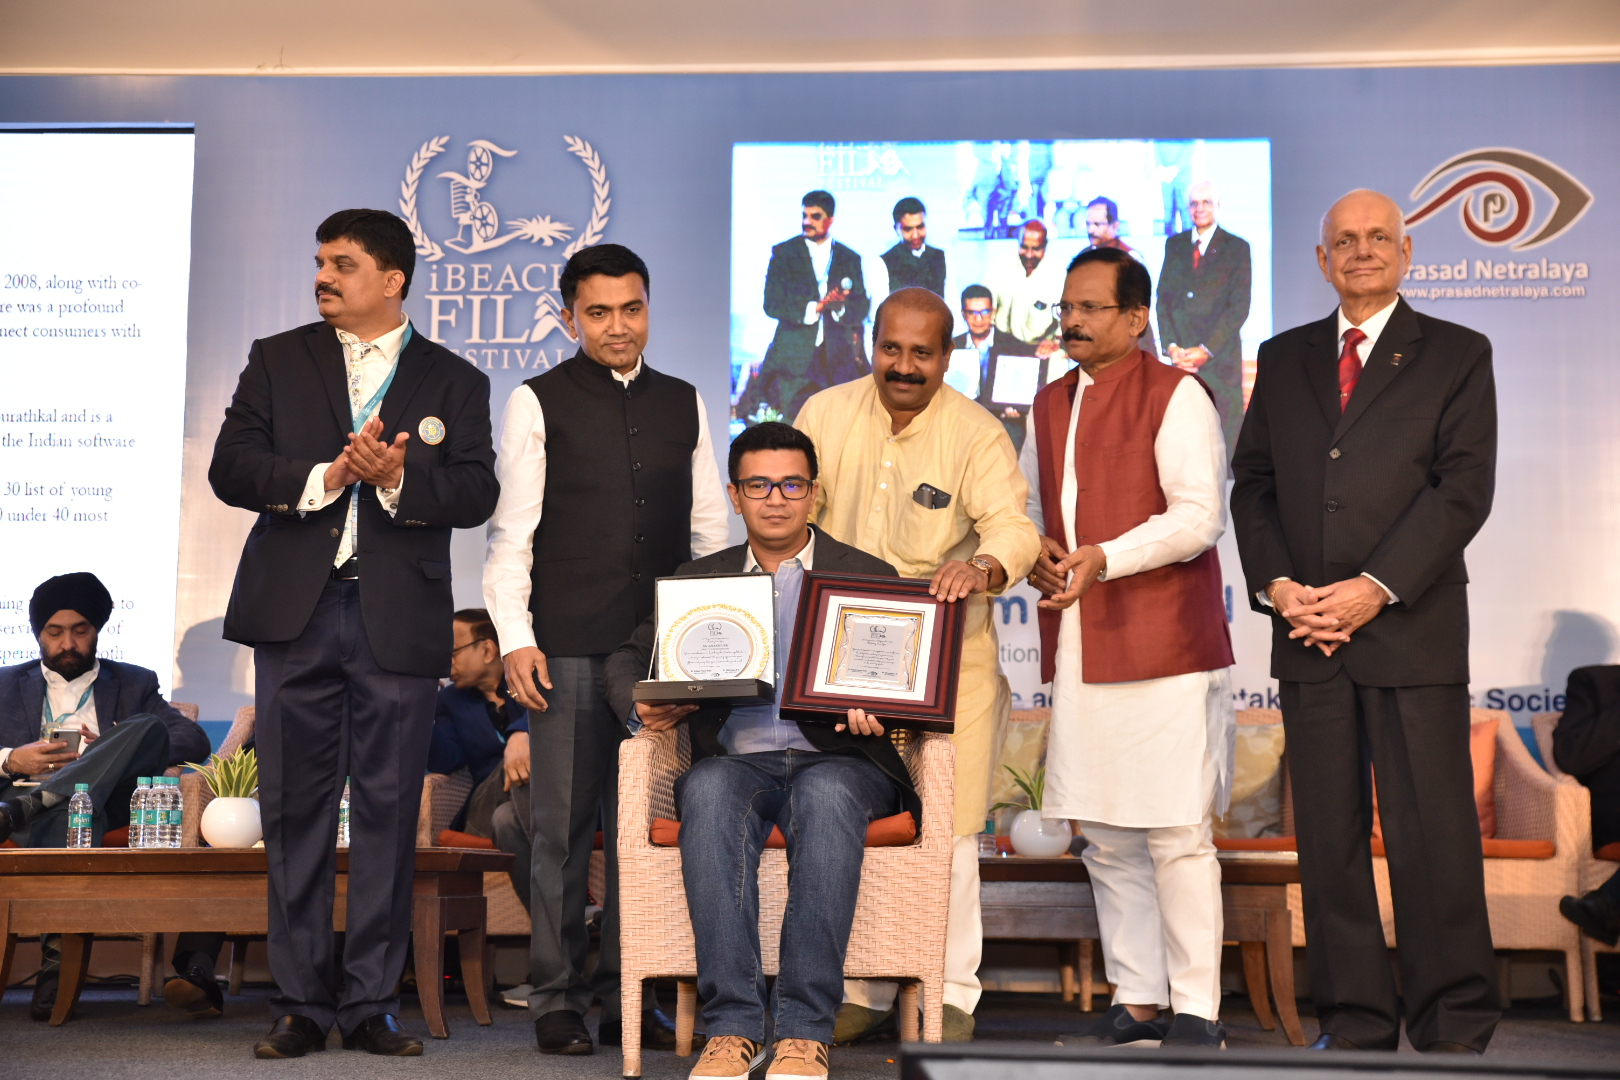 Karnataka Ophthalmic Society honours Practo for its exemplary contribution in digital healthcare at iBeach Festival 2019